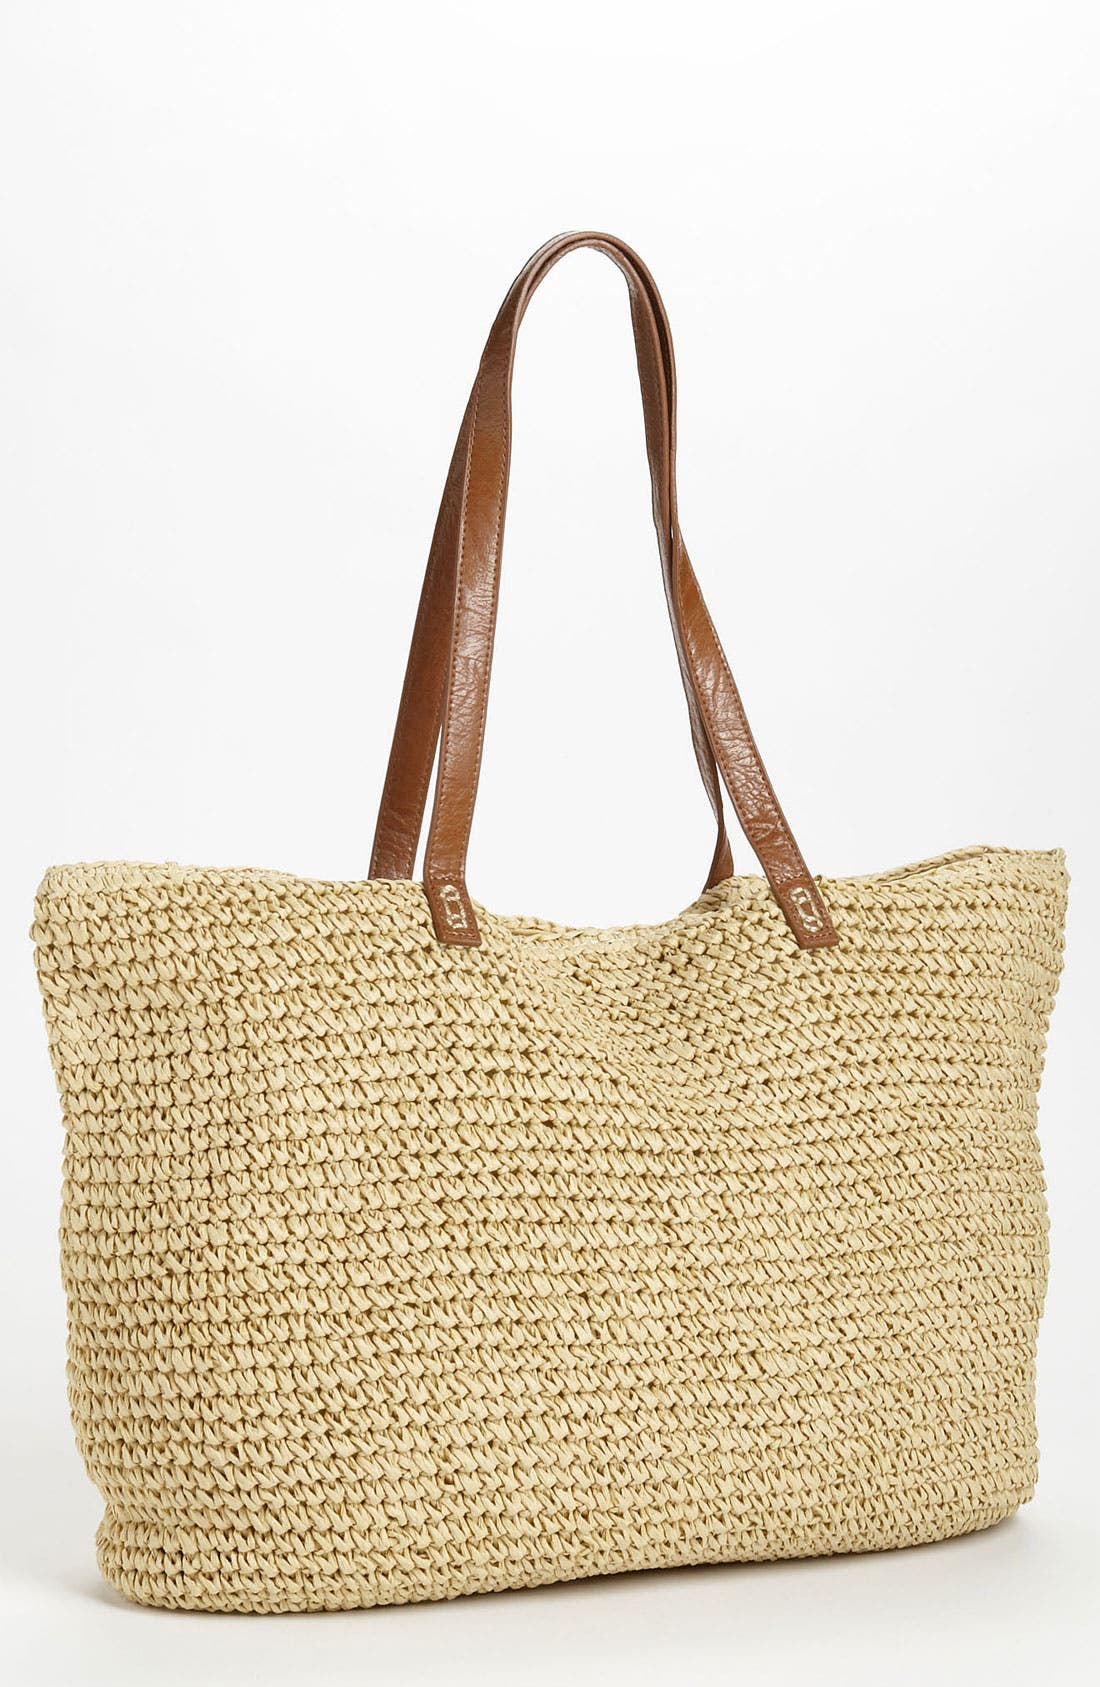 Alternate Image 1 Selected - Straw Studios 'East West' Tote